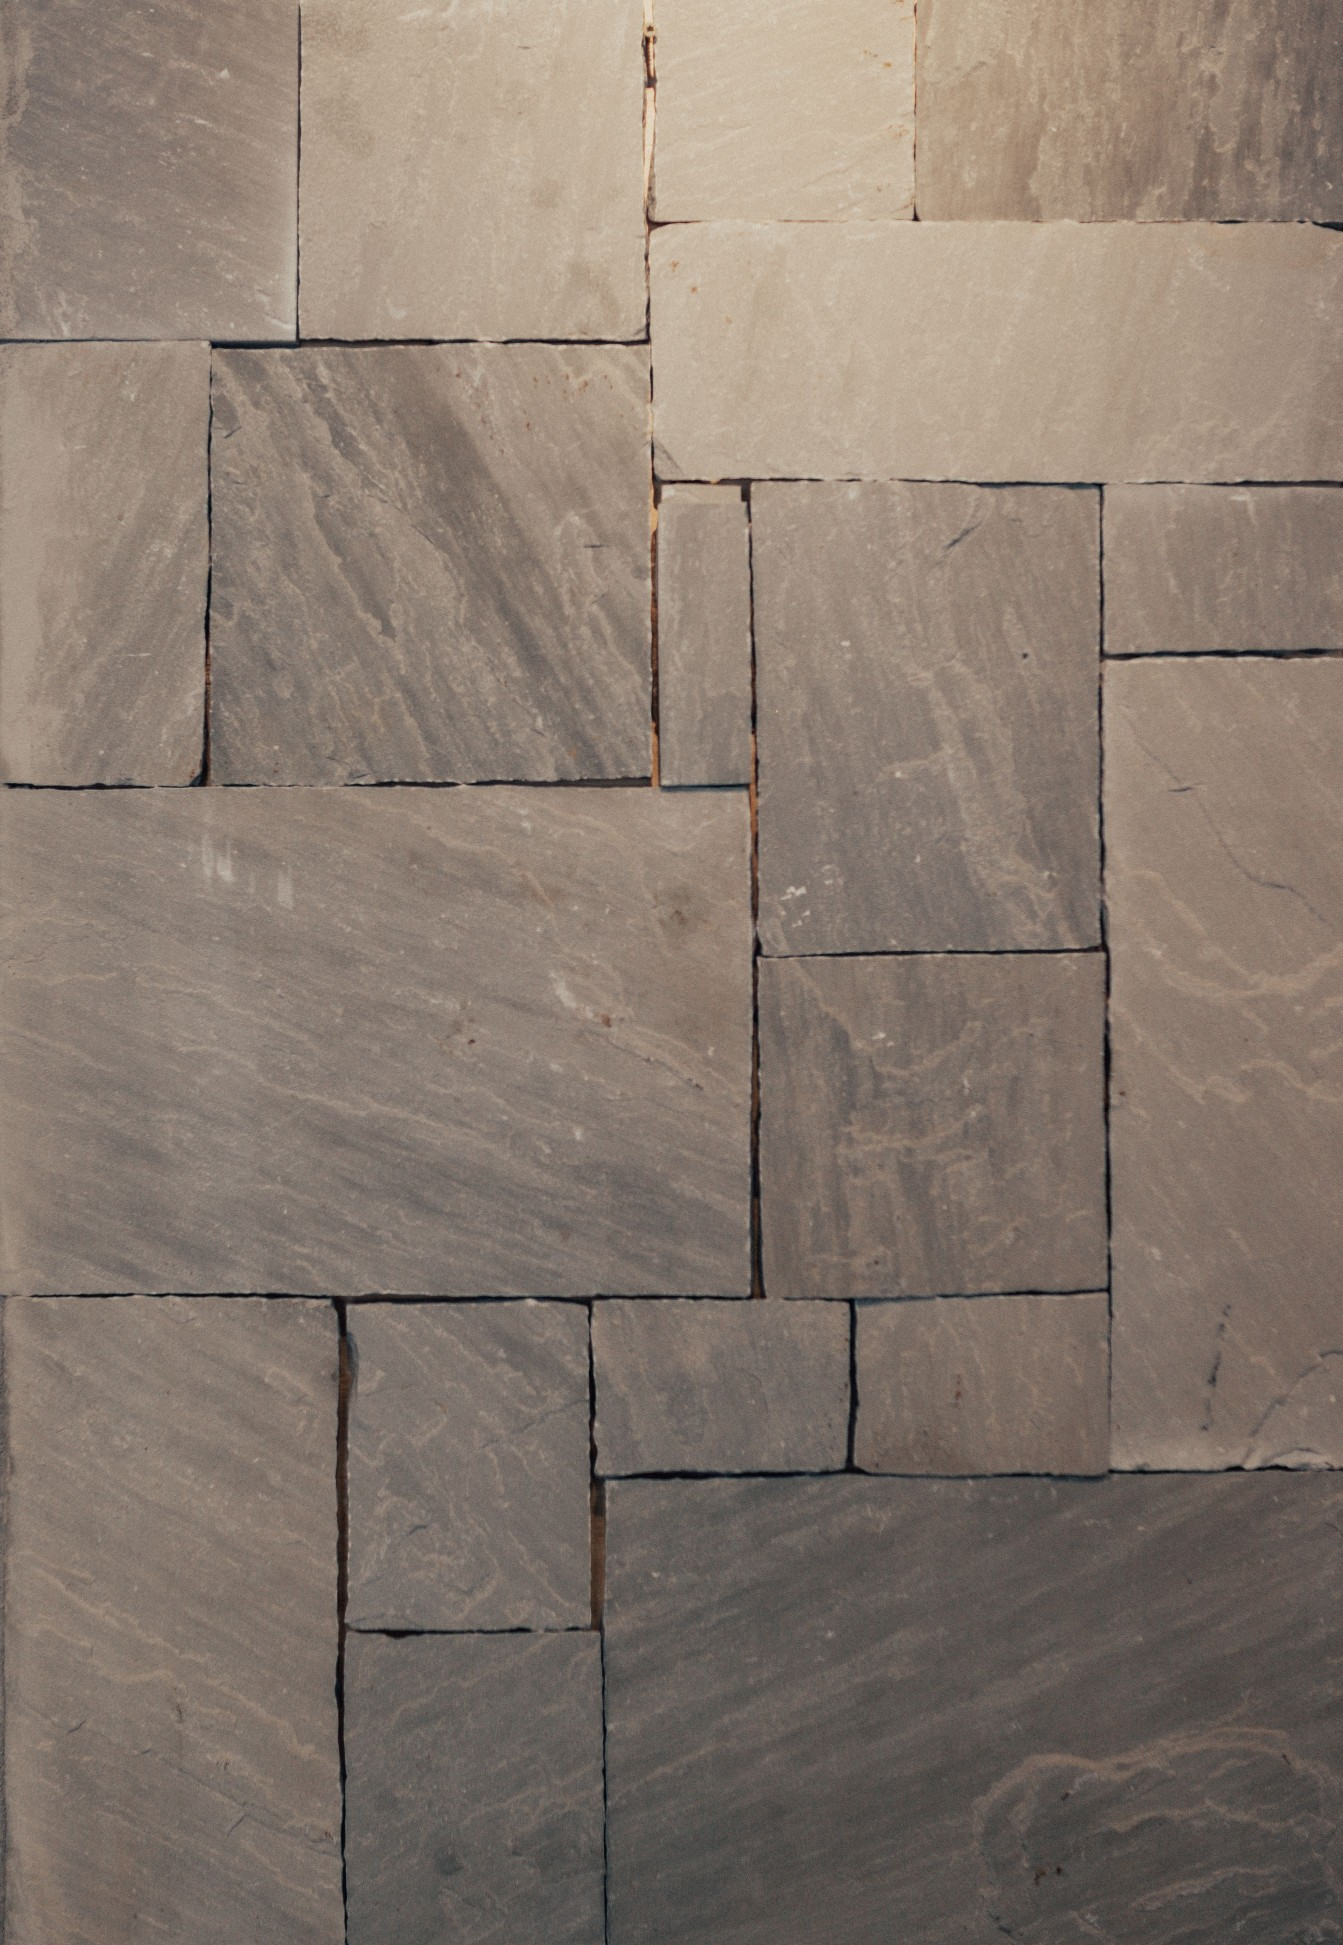 Natural Stone Veneers ǀ Faux Stone Siding ǀ Stone Veneer: J & R Garden, Stone, And Rental Inc